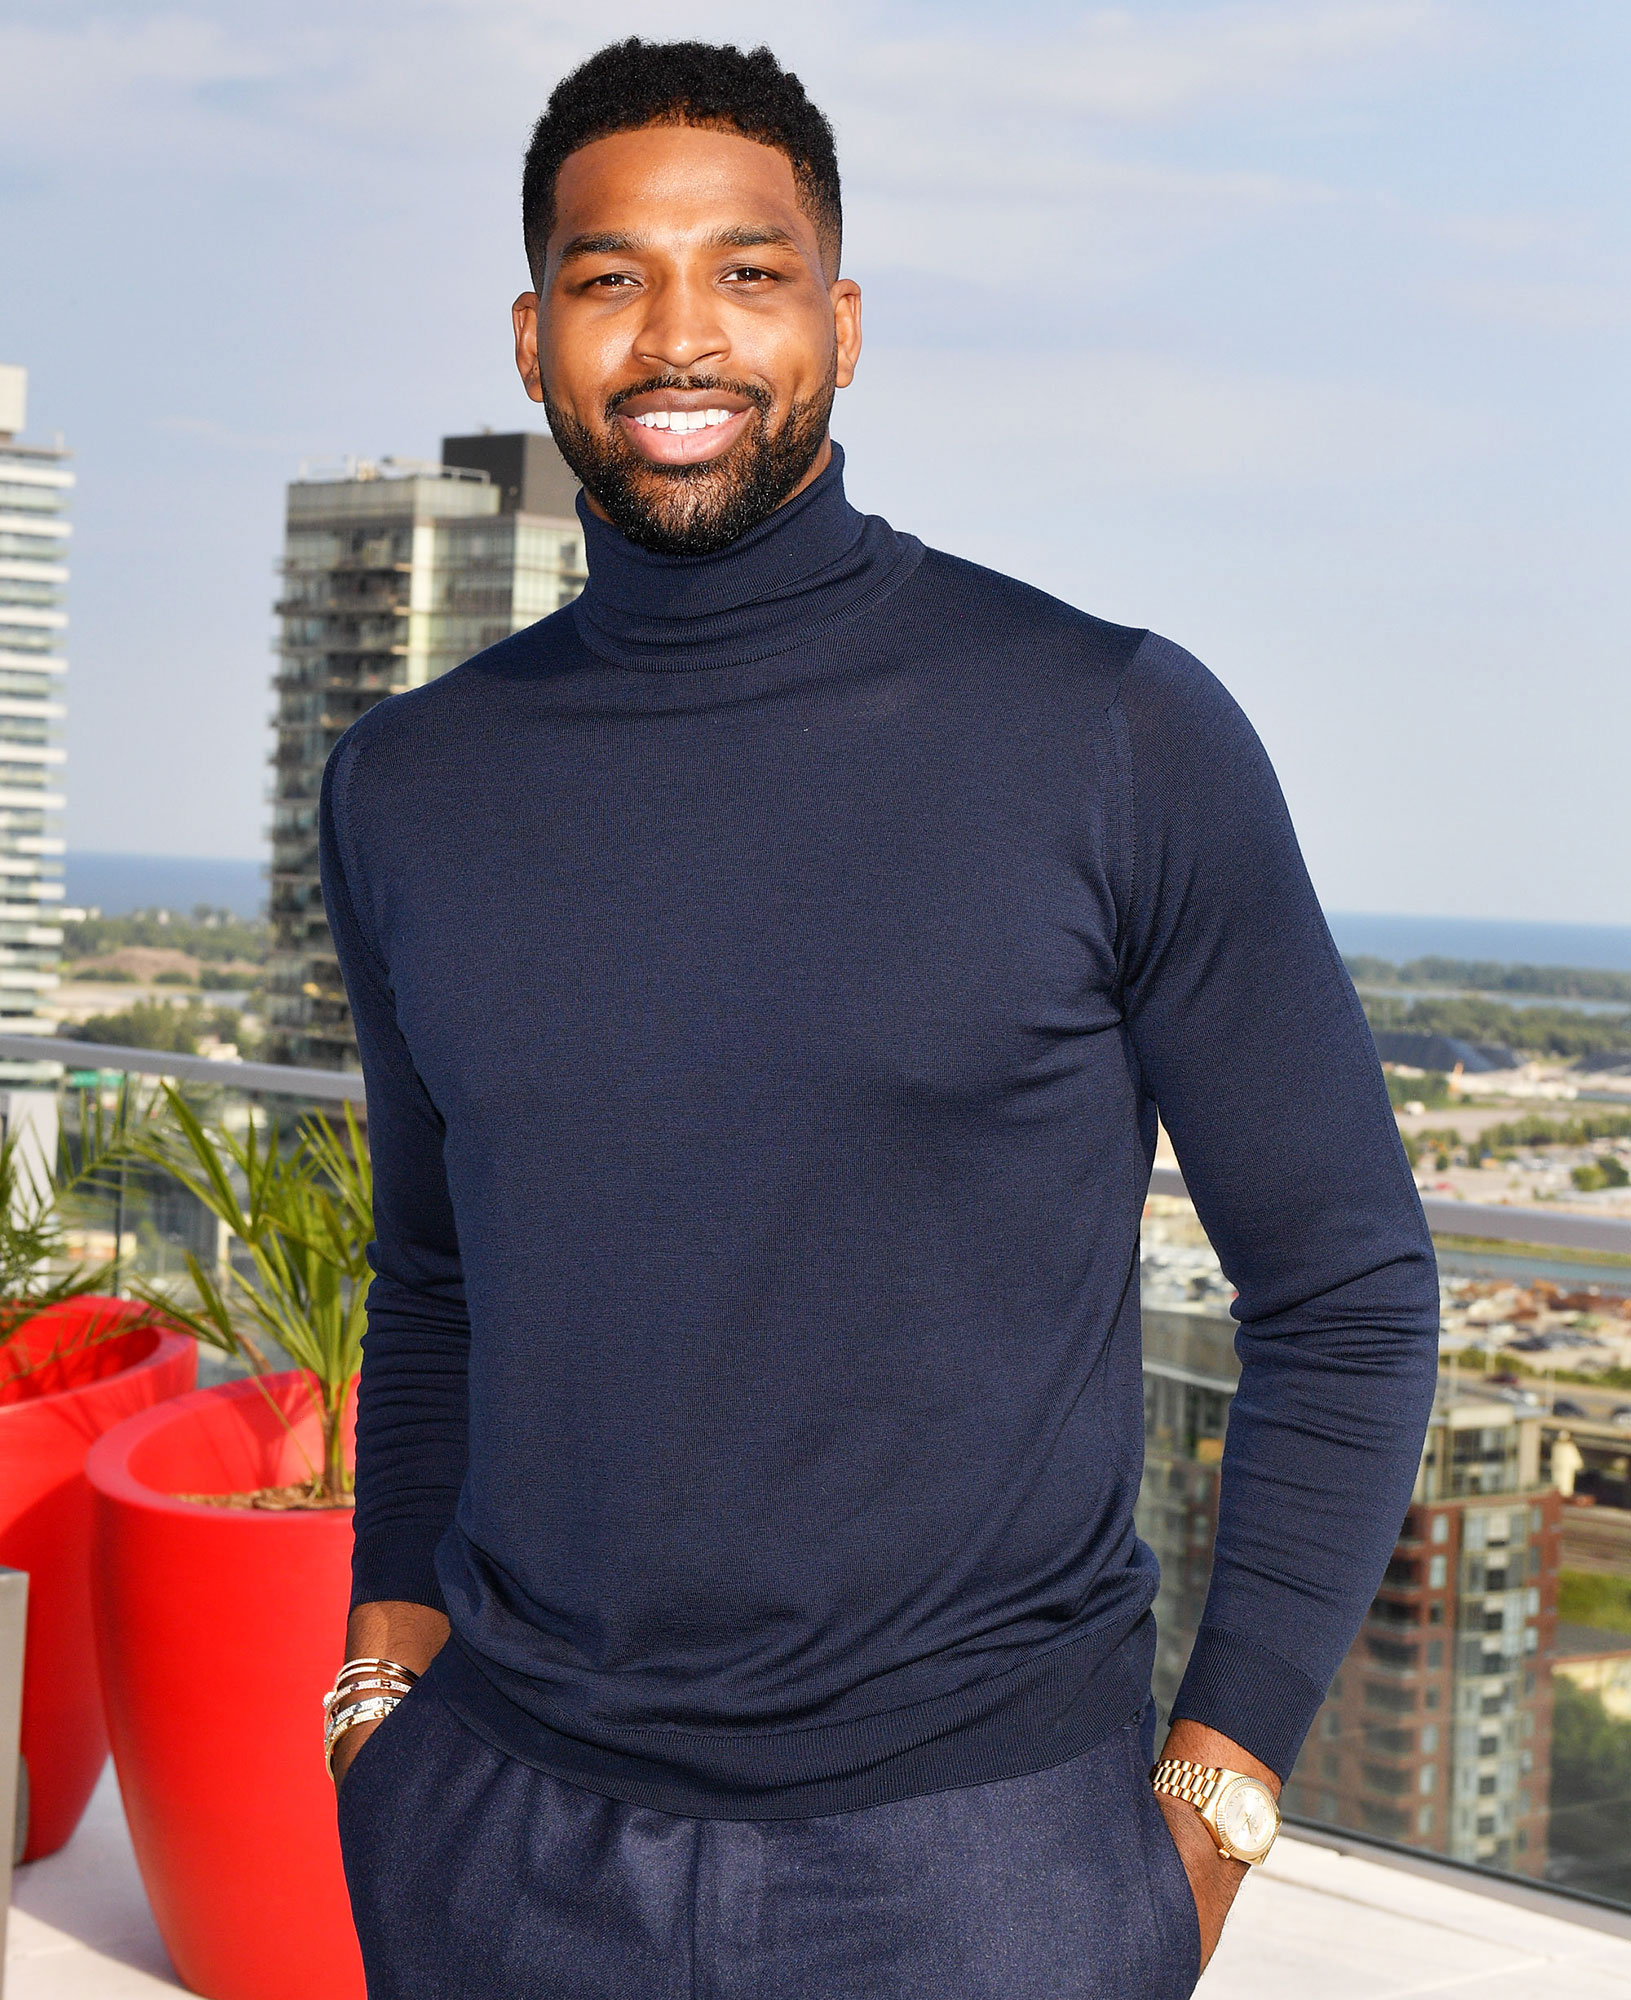 Tristan Thompson Hooking Up With Women Khloe Kardashian Split - Tristan Thompson attends The Amari Thompson Soiree in support of Epilepsy Toronto at The Globe and Mail Centre on August 9, 2018.